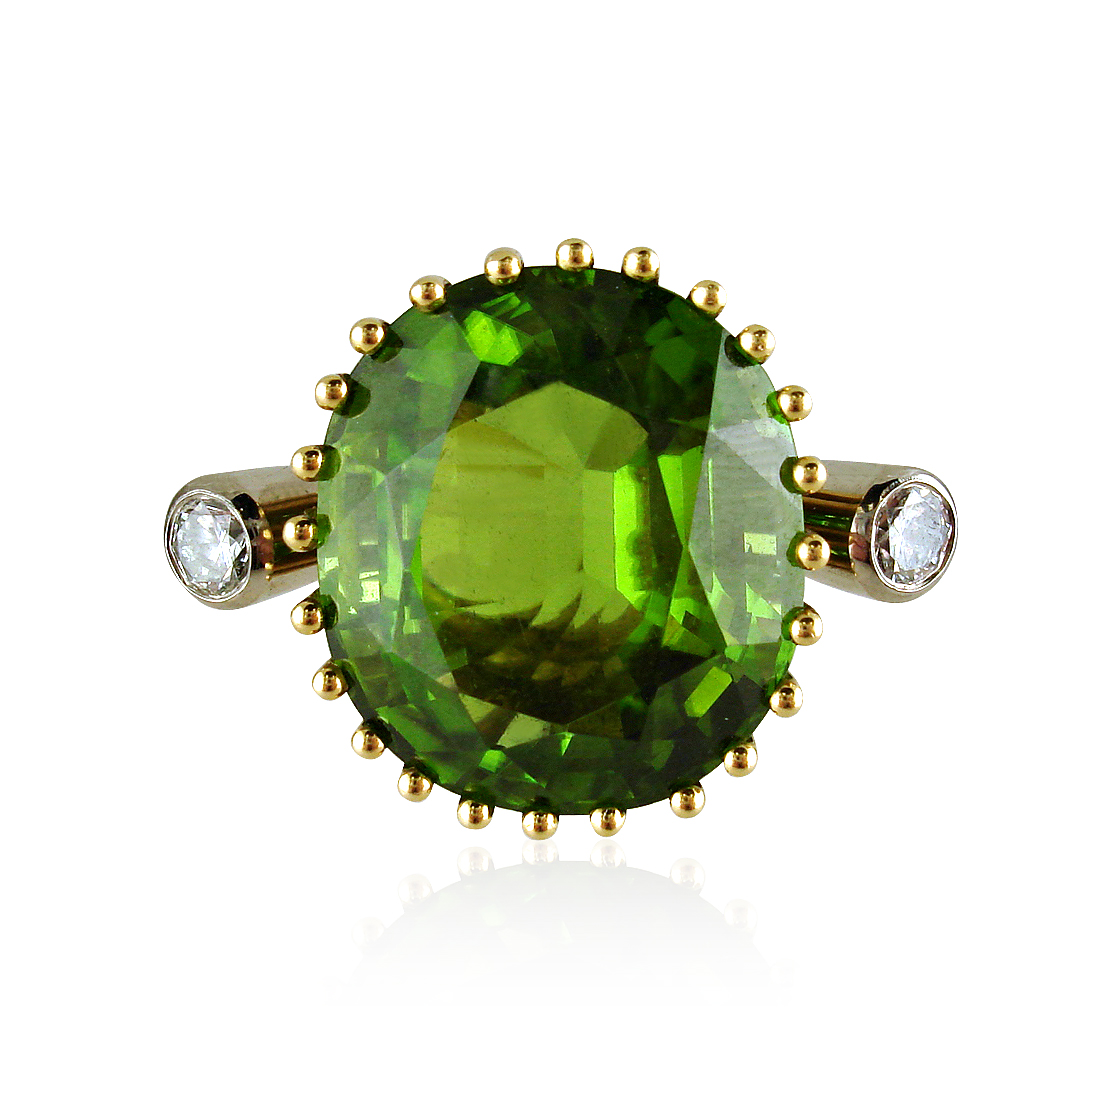 PERIDOT AND DIAMOND COCKTAIL RING